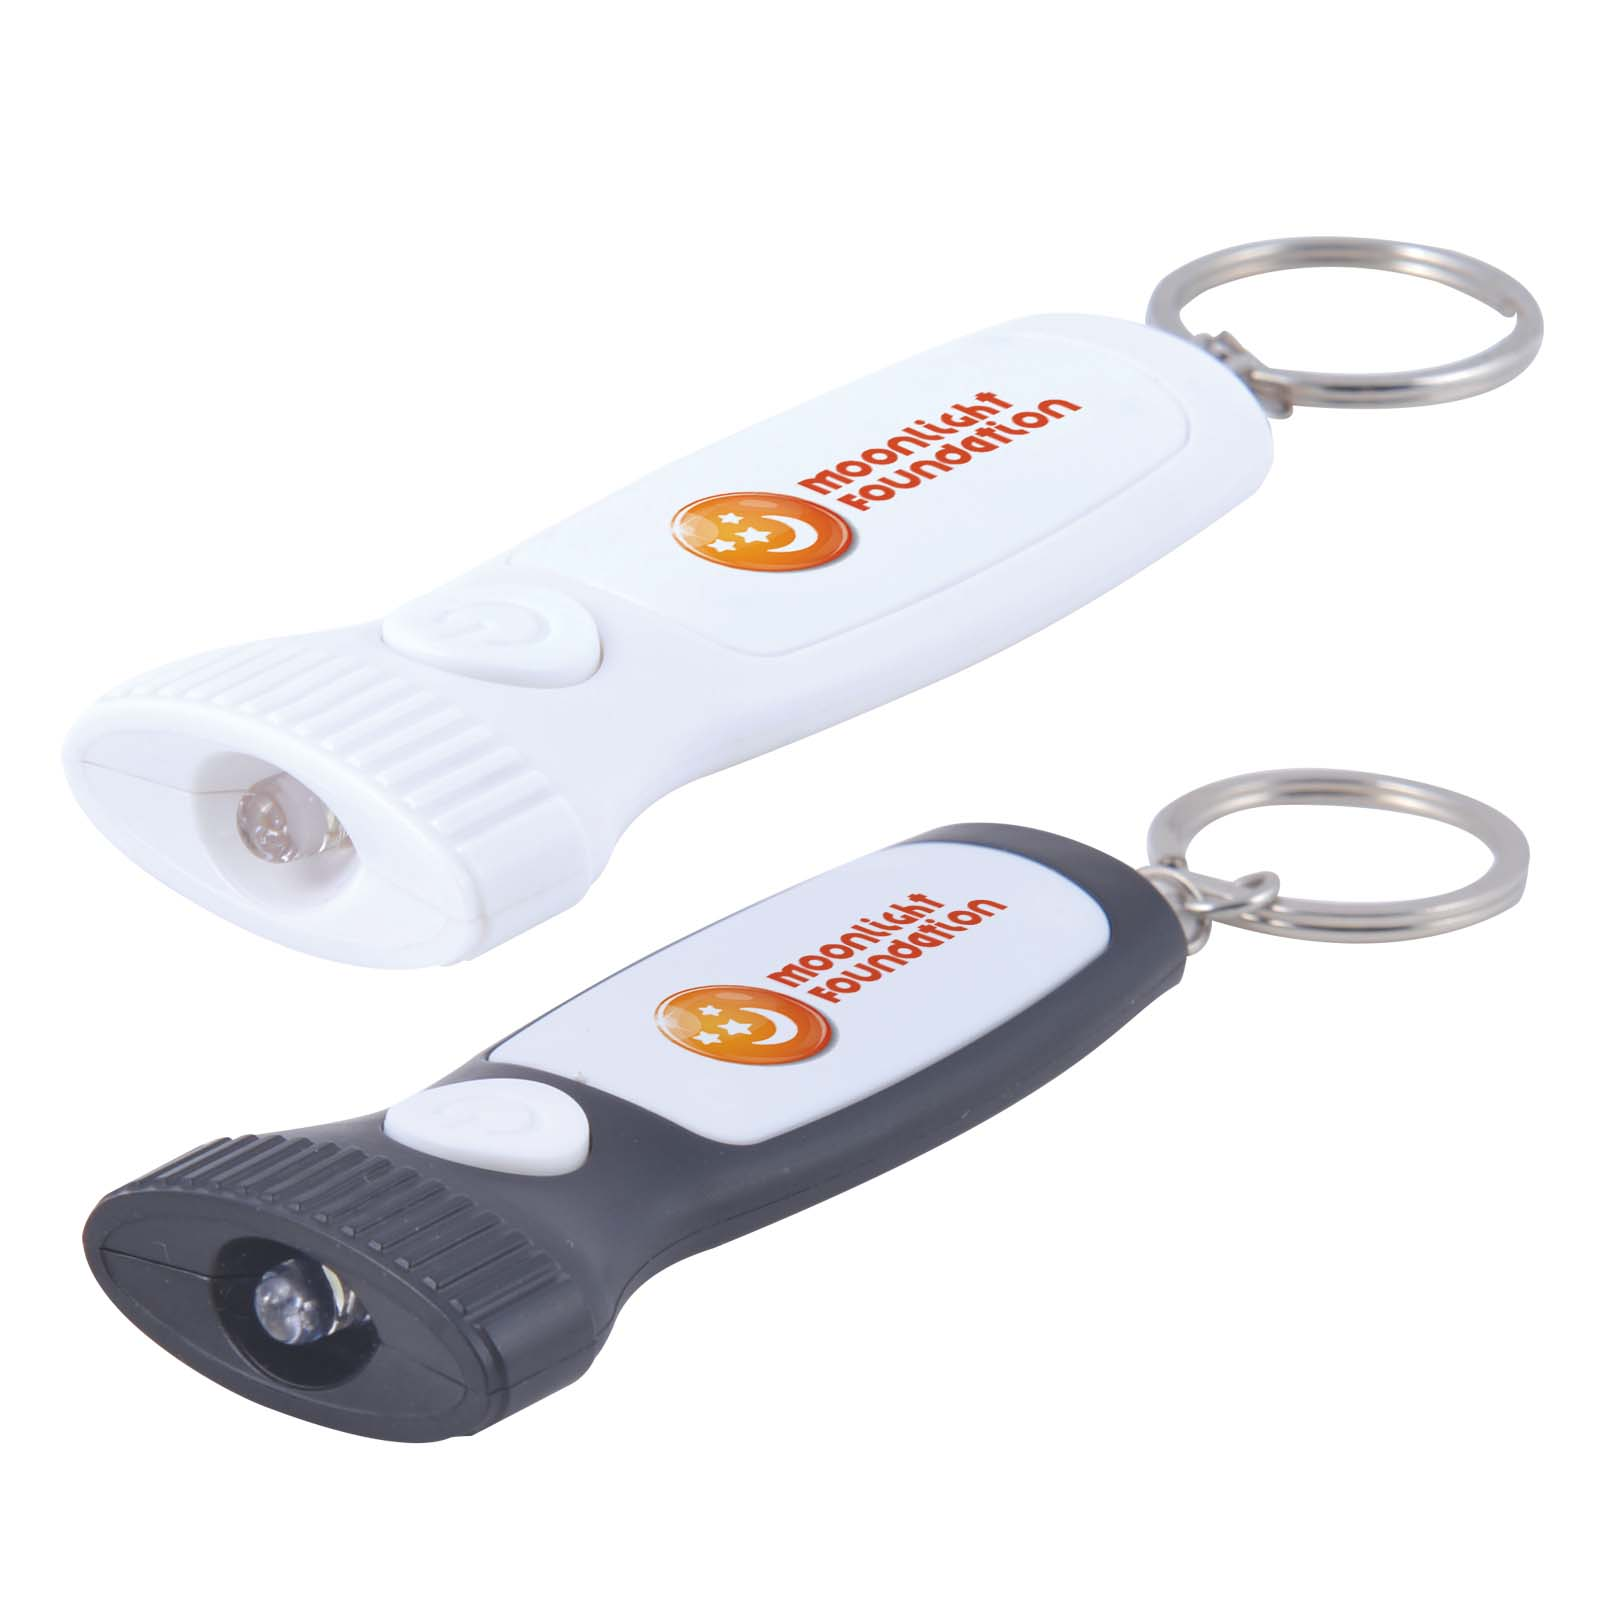 Flash Flashlight Keytag - Includes a 1 colour printed logo